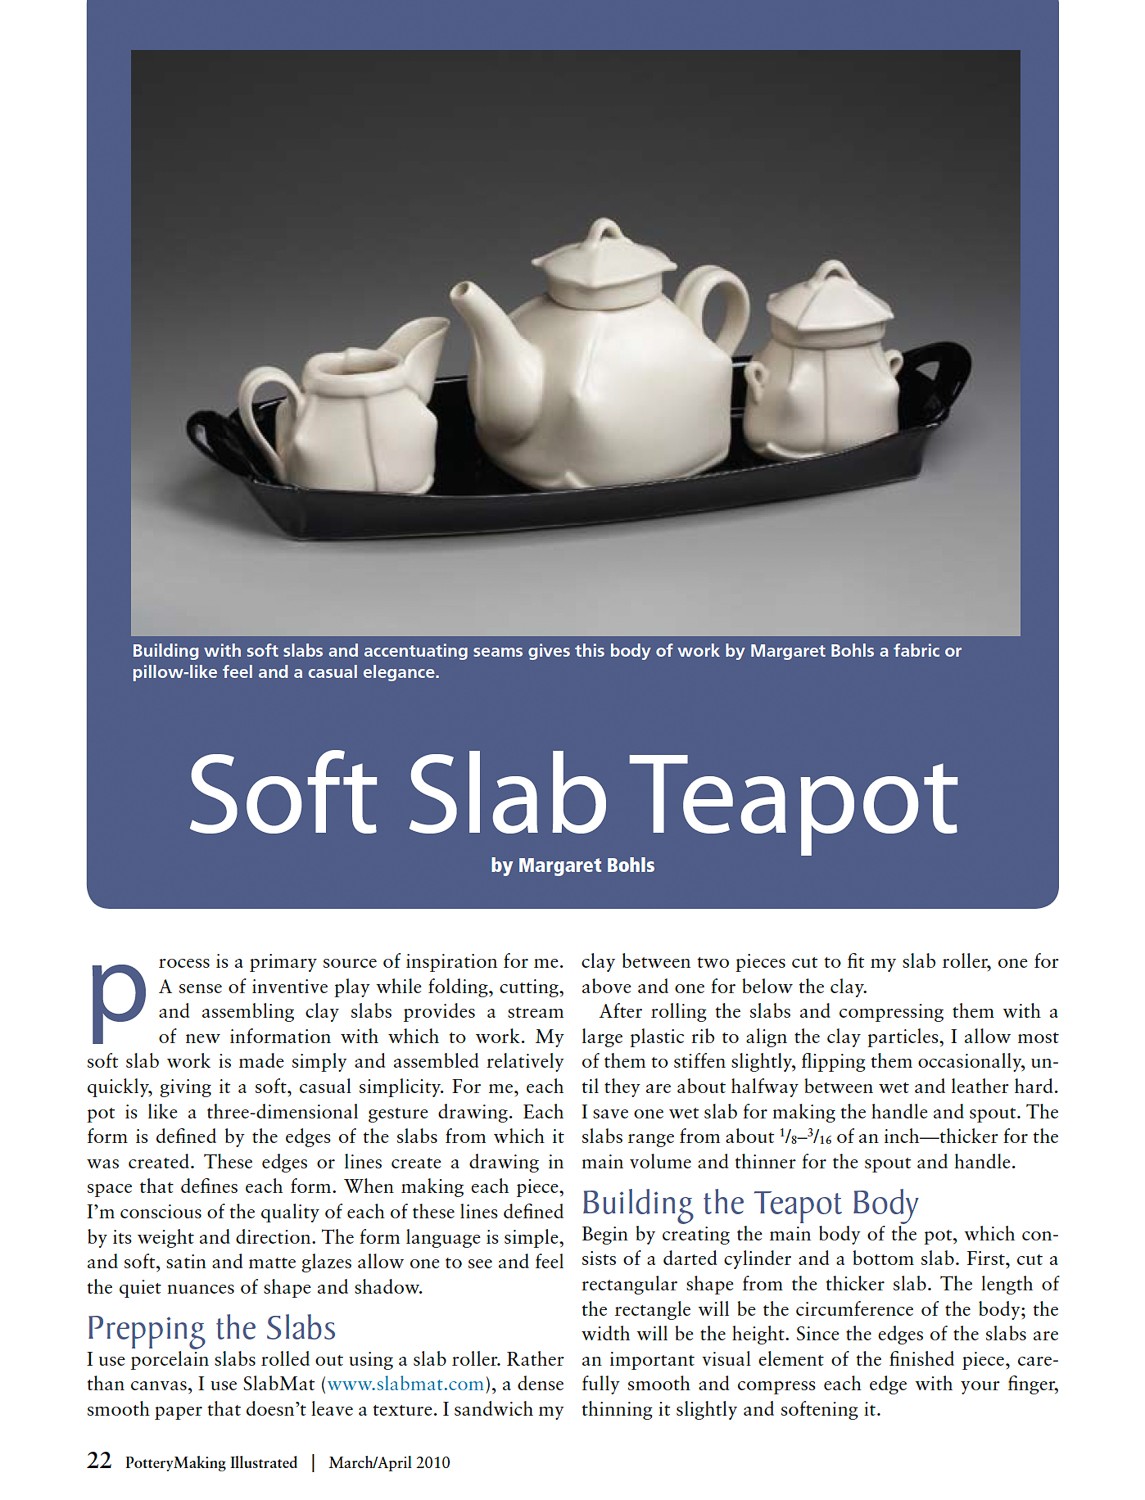 SOFT SLAB TEAPOT  by Margaret Bohls   Pottery Making Illustrated , March/April 2010.